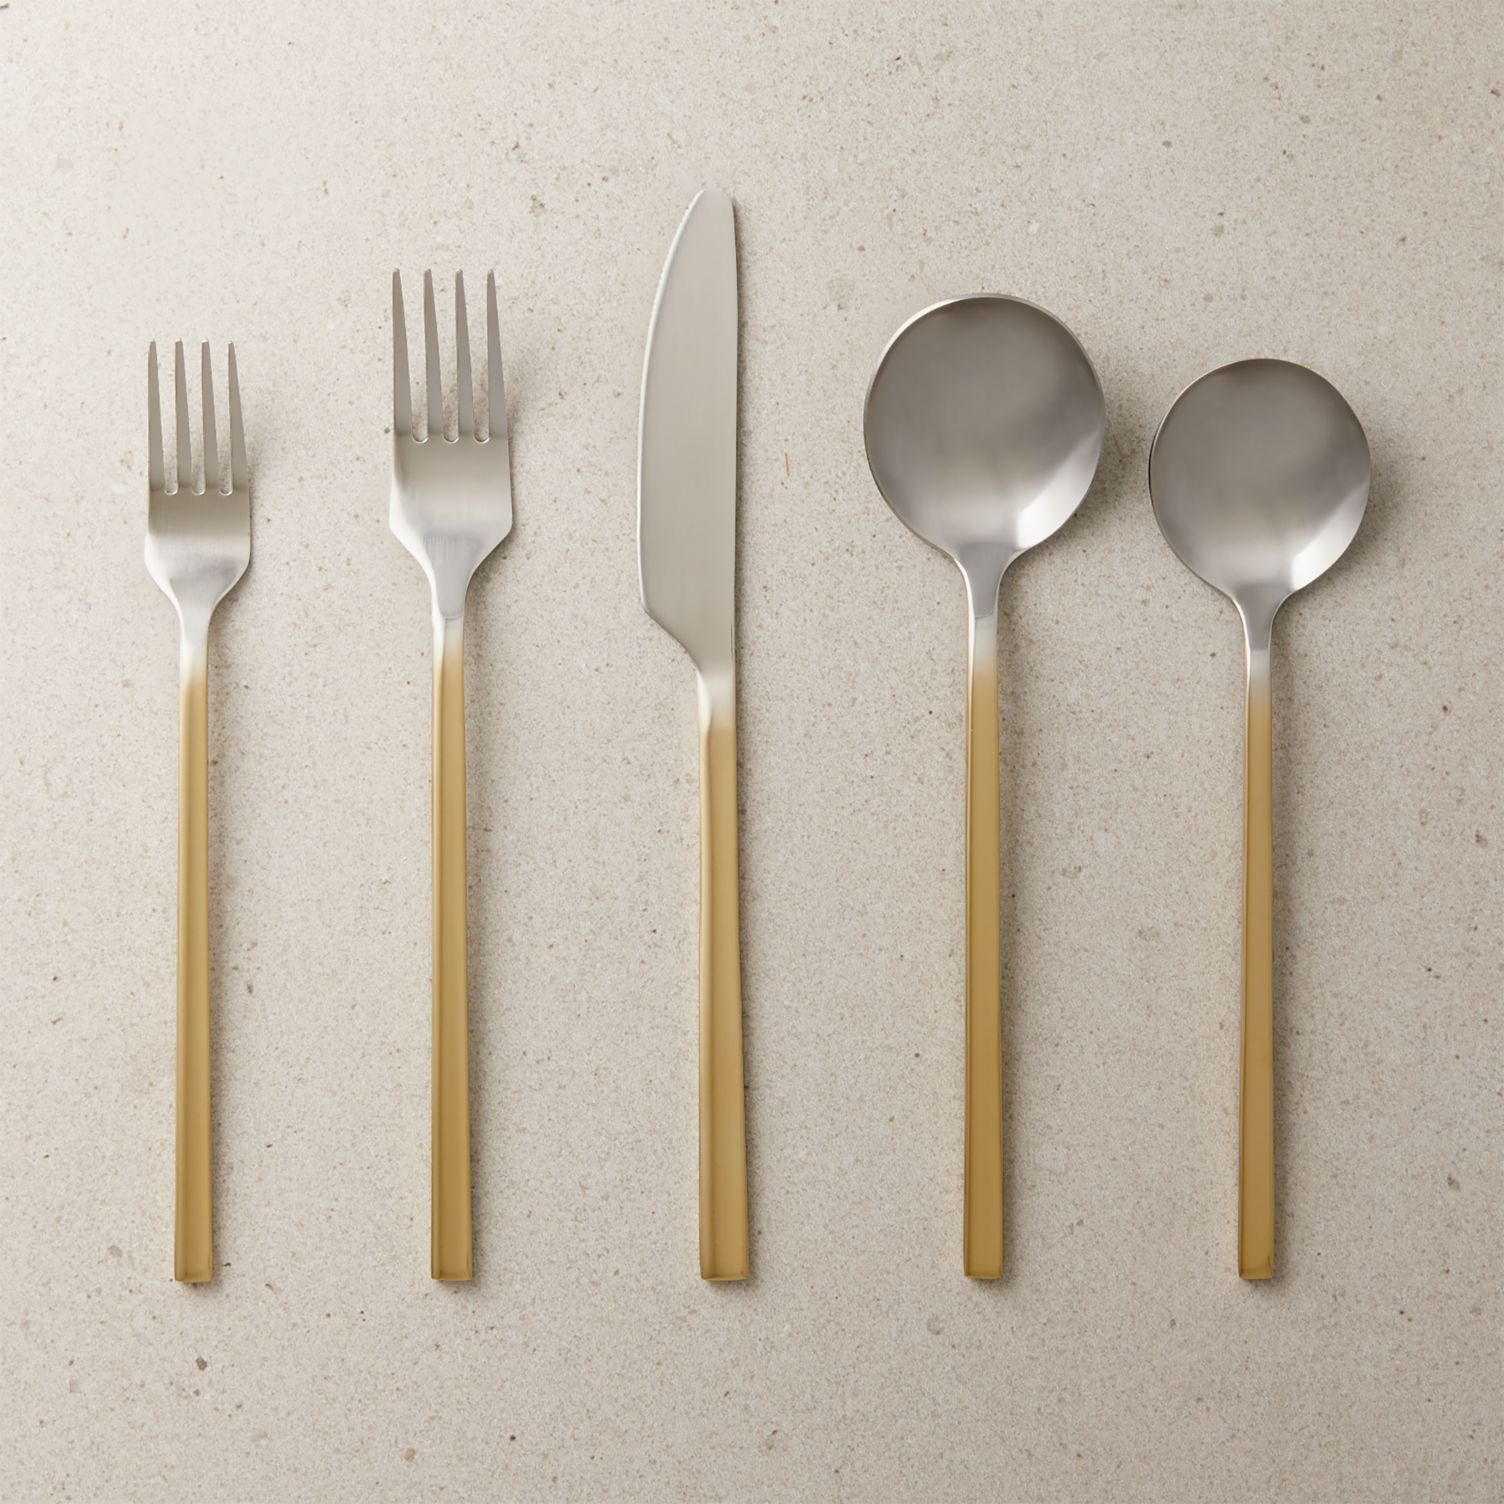 Two-toned flatware with a fade effect